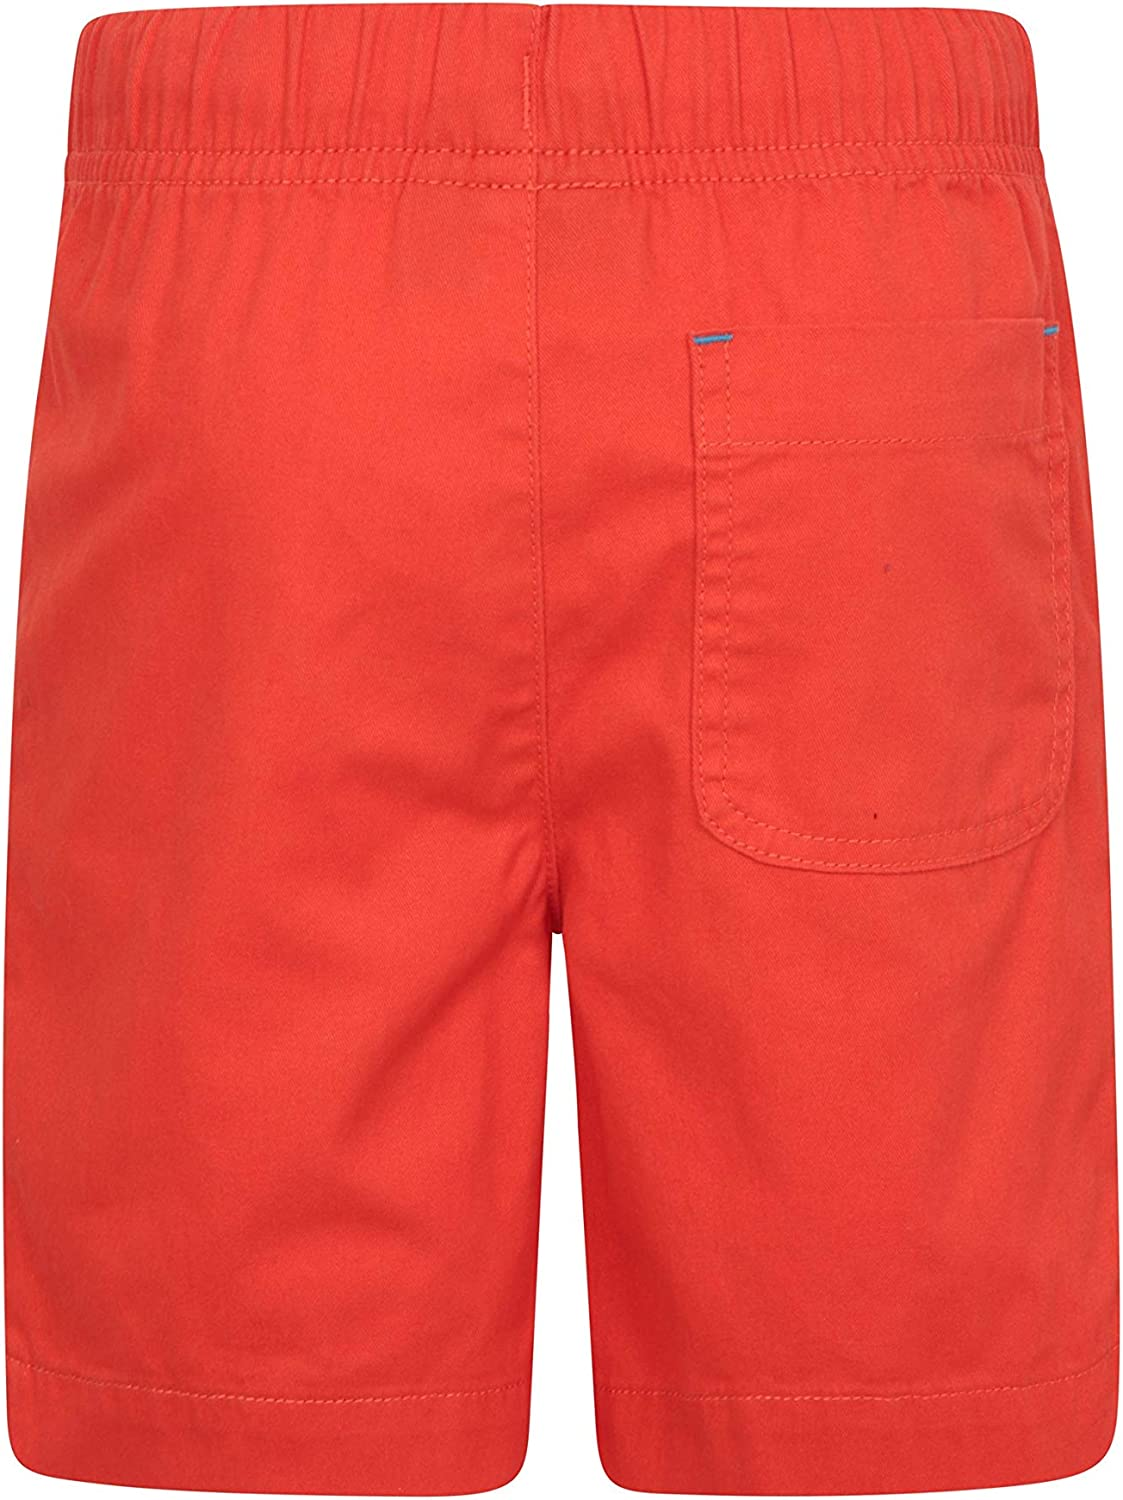 Elastic Waistband Trousers -for Sports Breathable Short Pants Beach Lightweight 100/% Cotton Summer Shorts Park Walking Mountain Warehouse Waterfall Kids Shorts